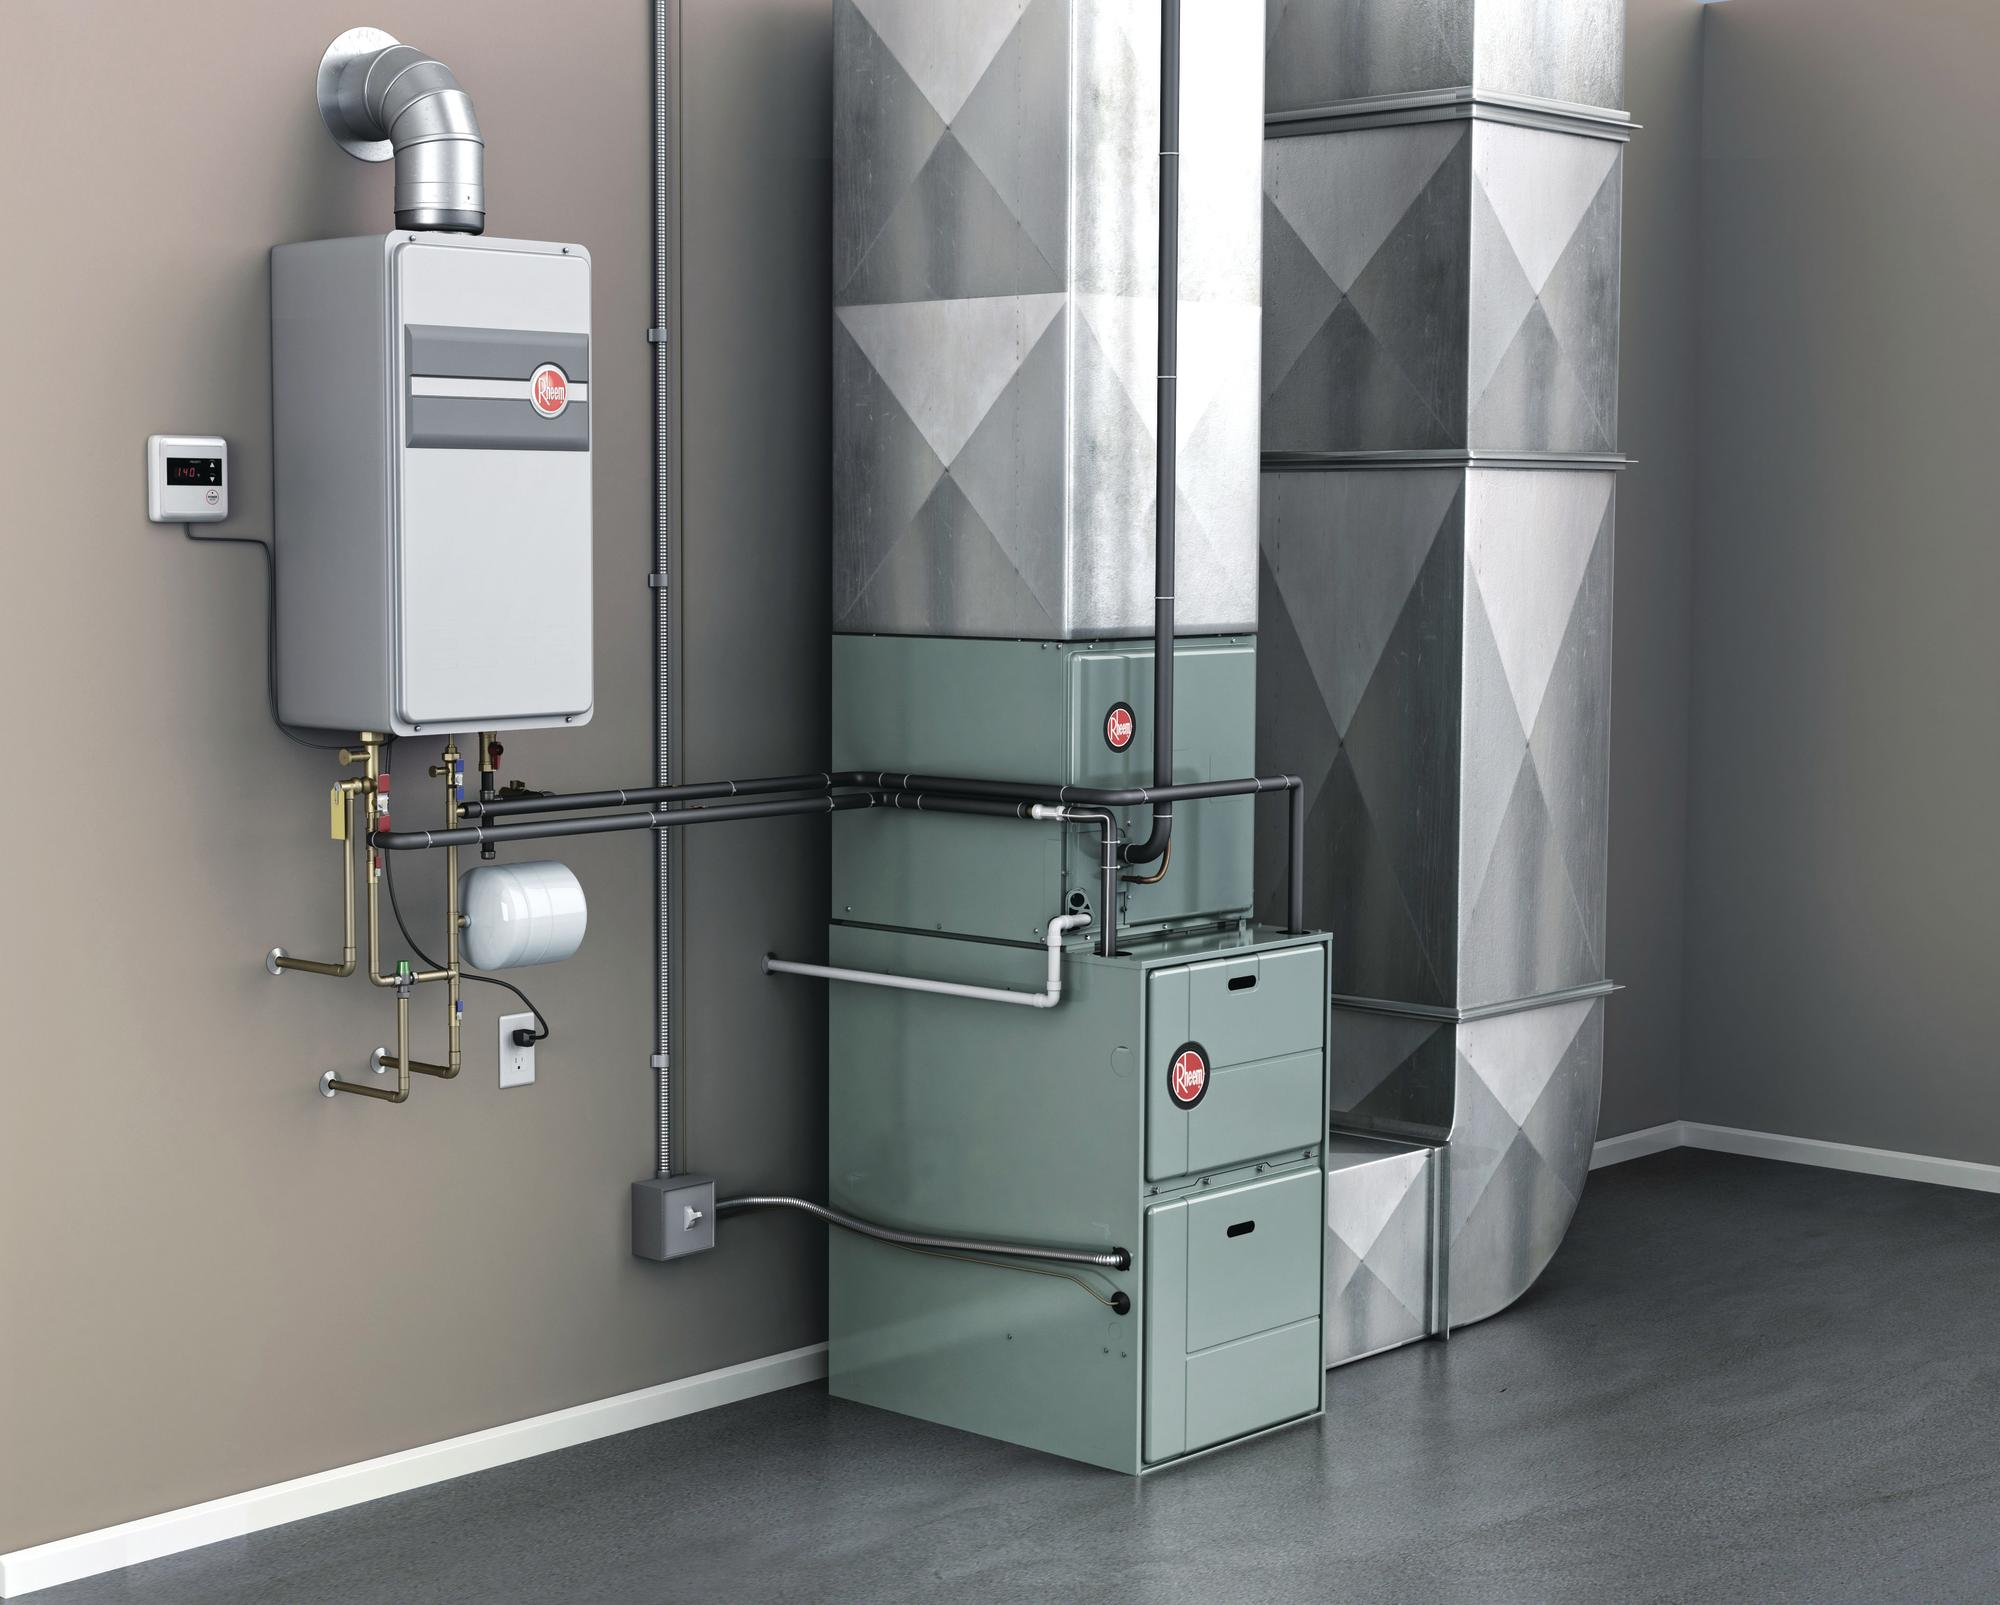 Rheem Integrated Hvac And Water Heating System Powered By